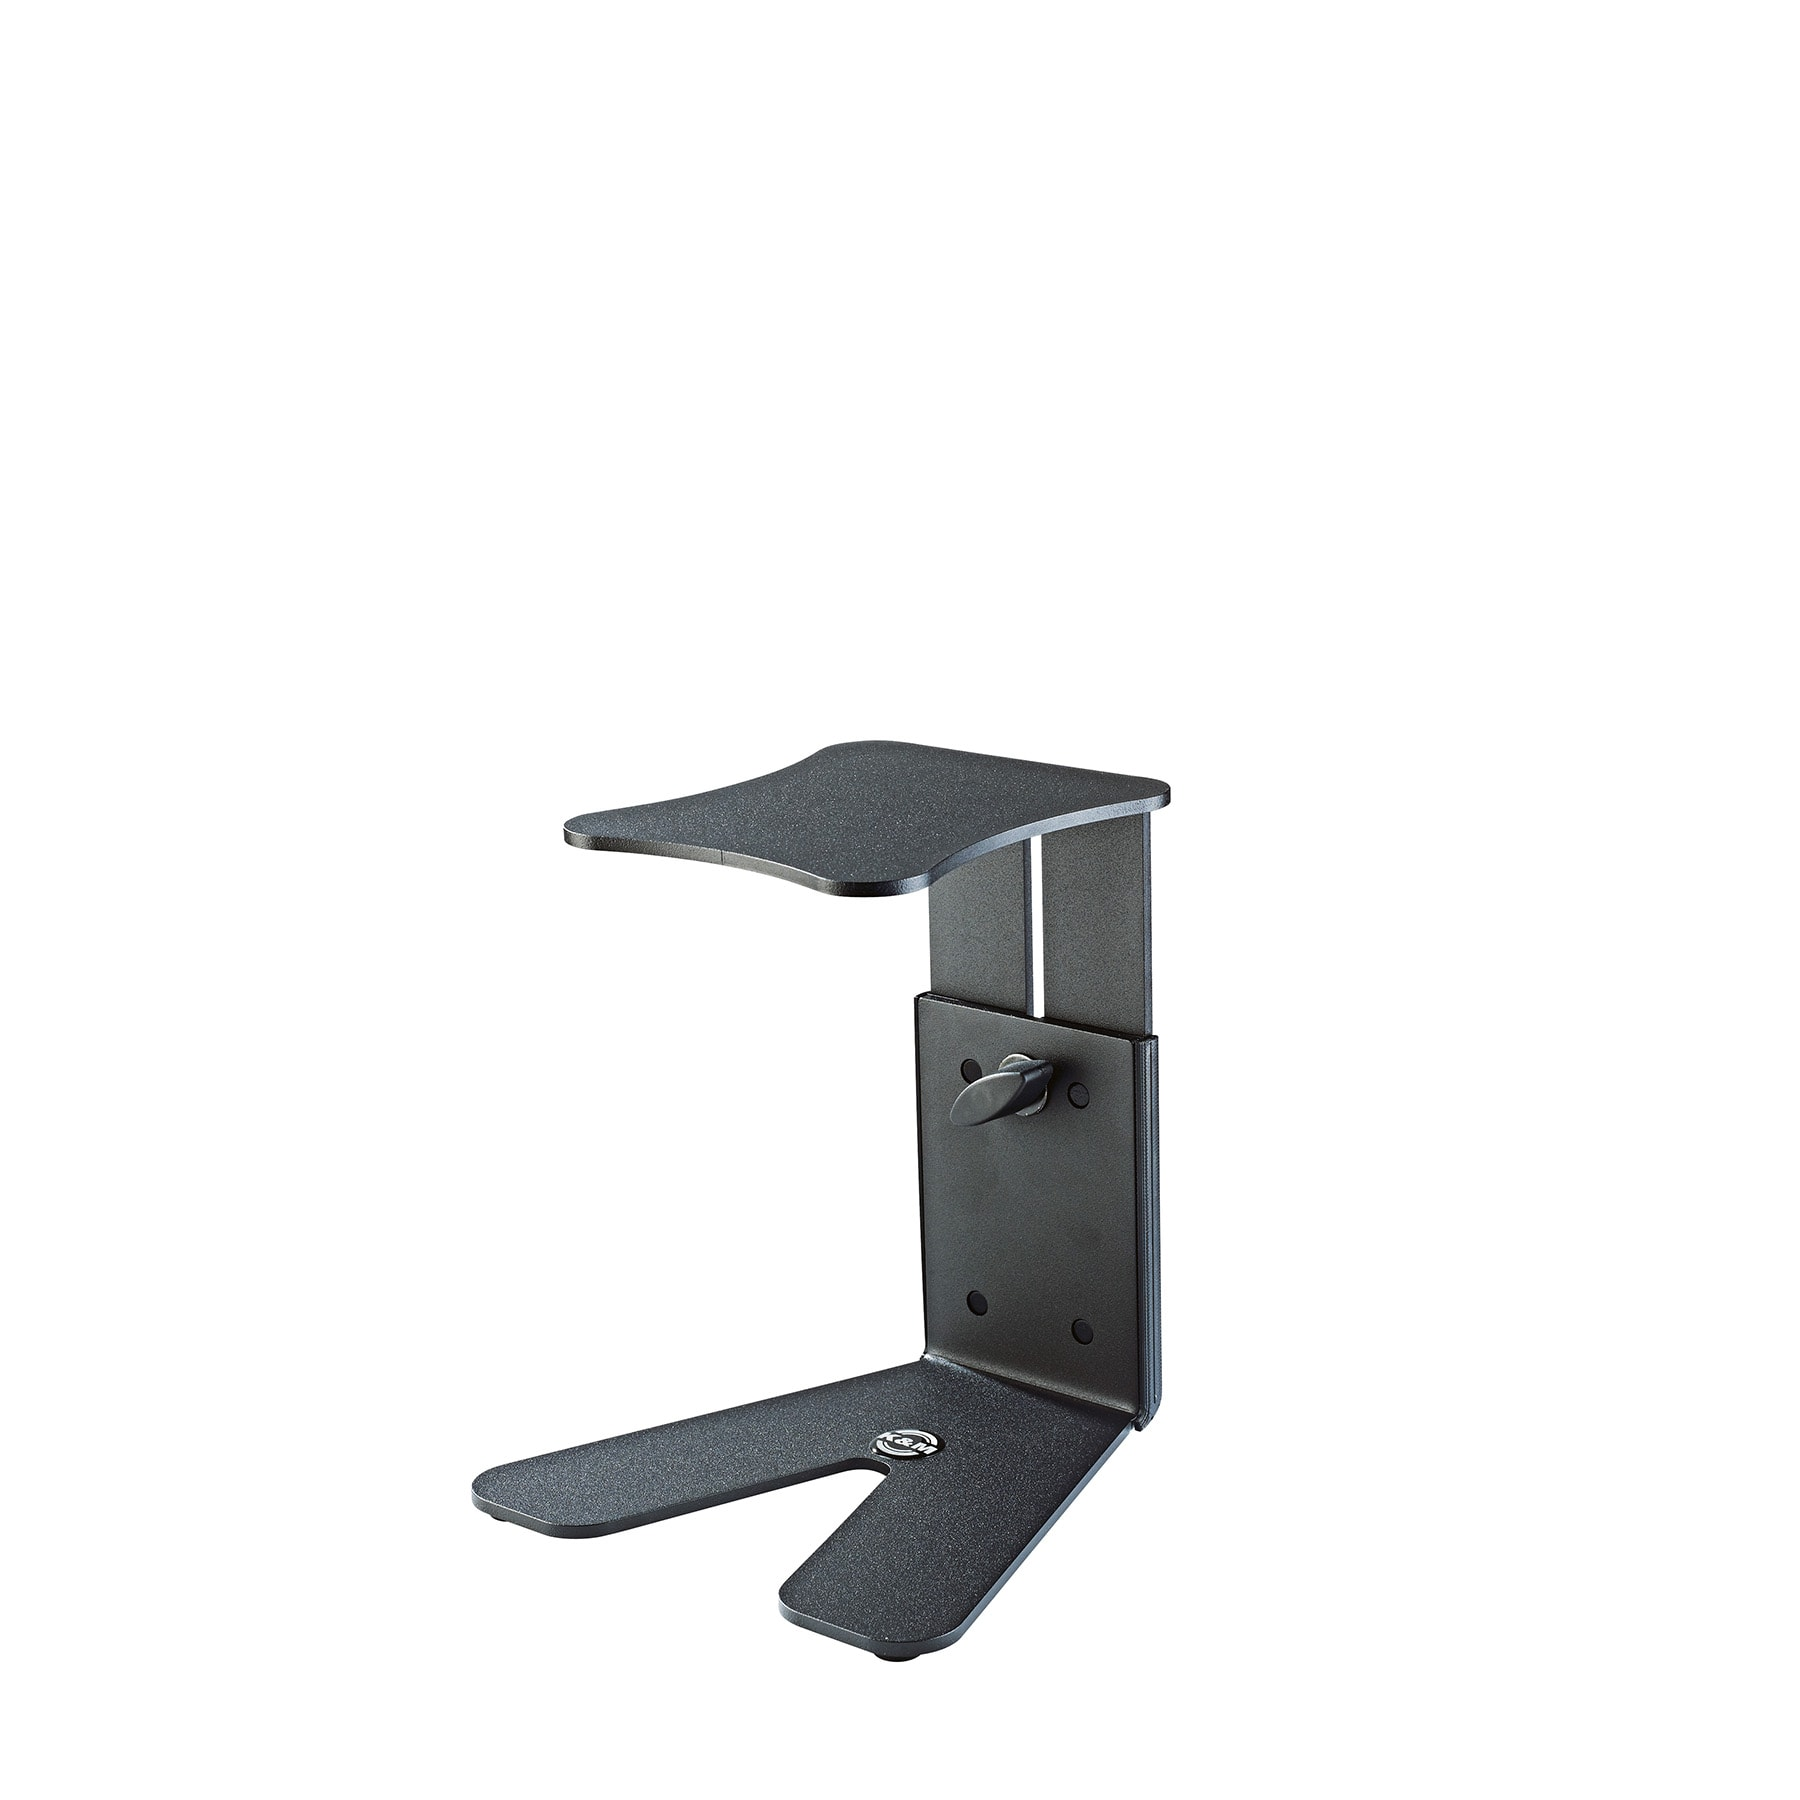 KM26772 - Table monitor stand